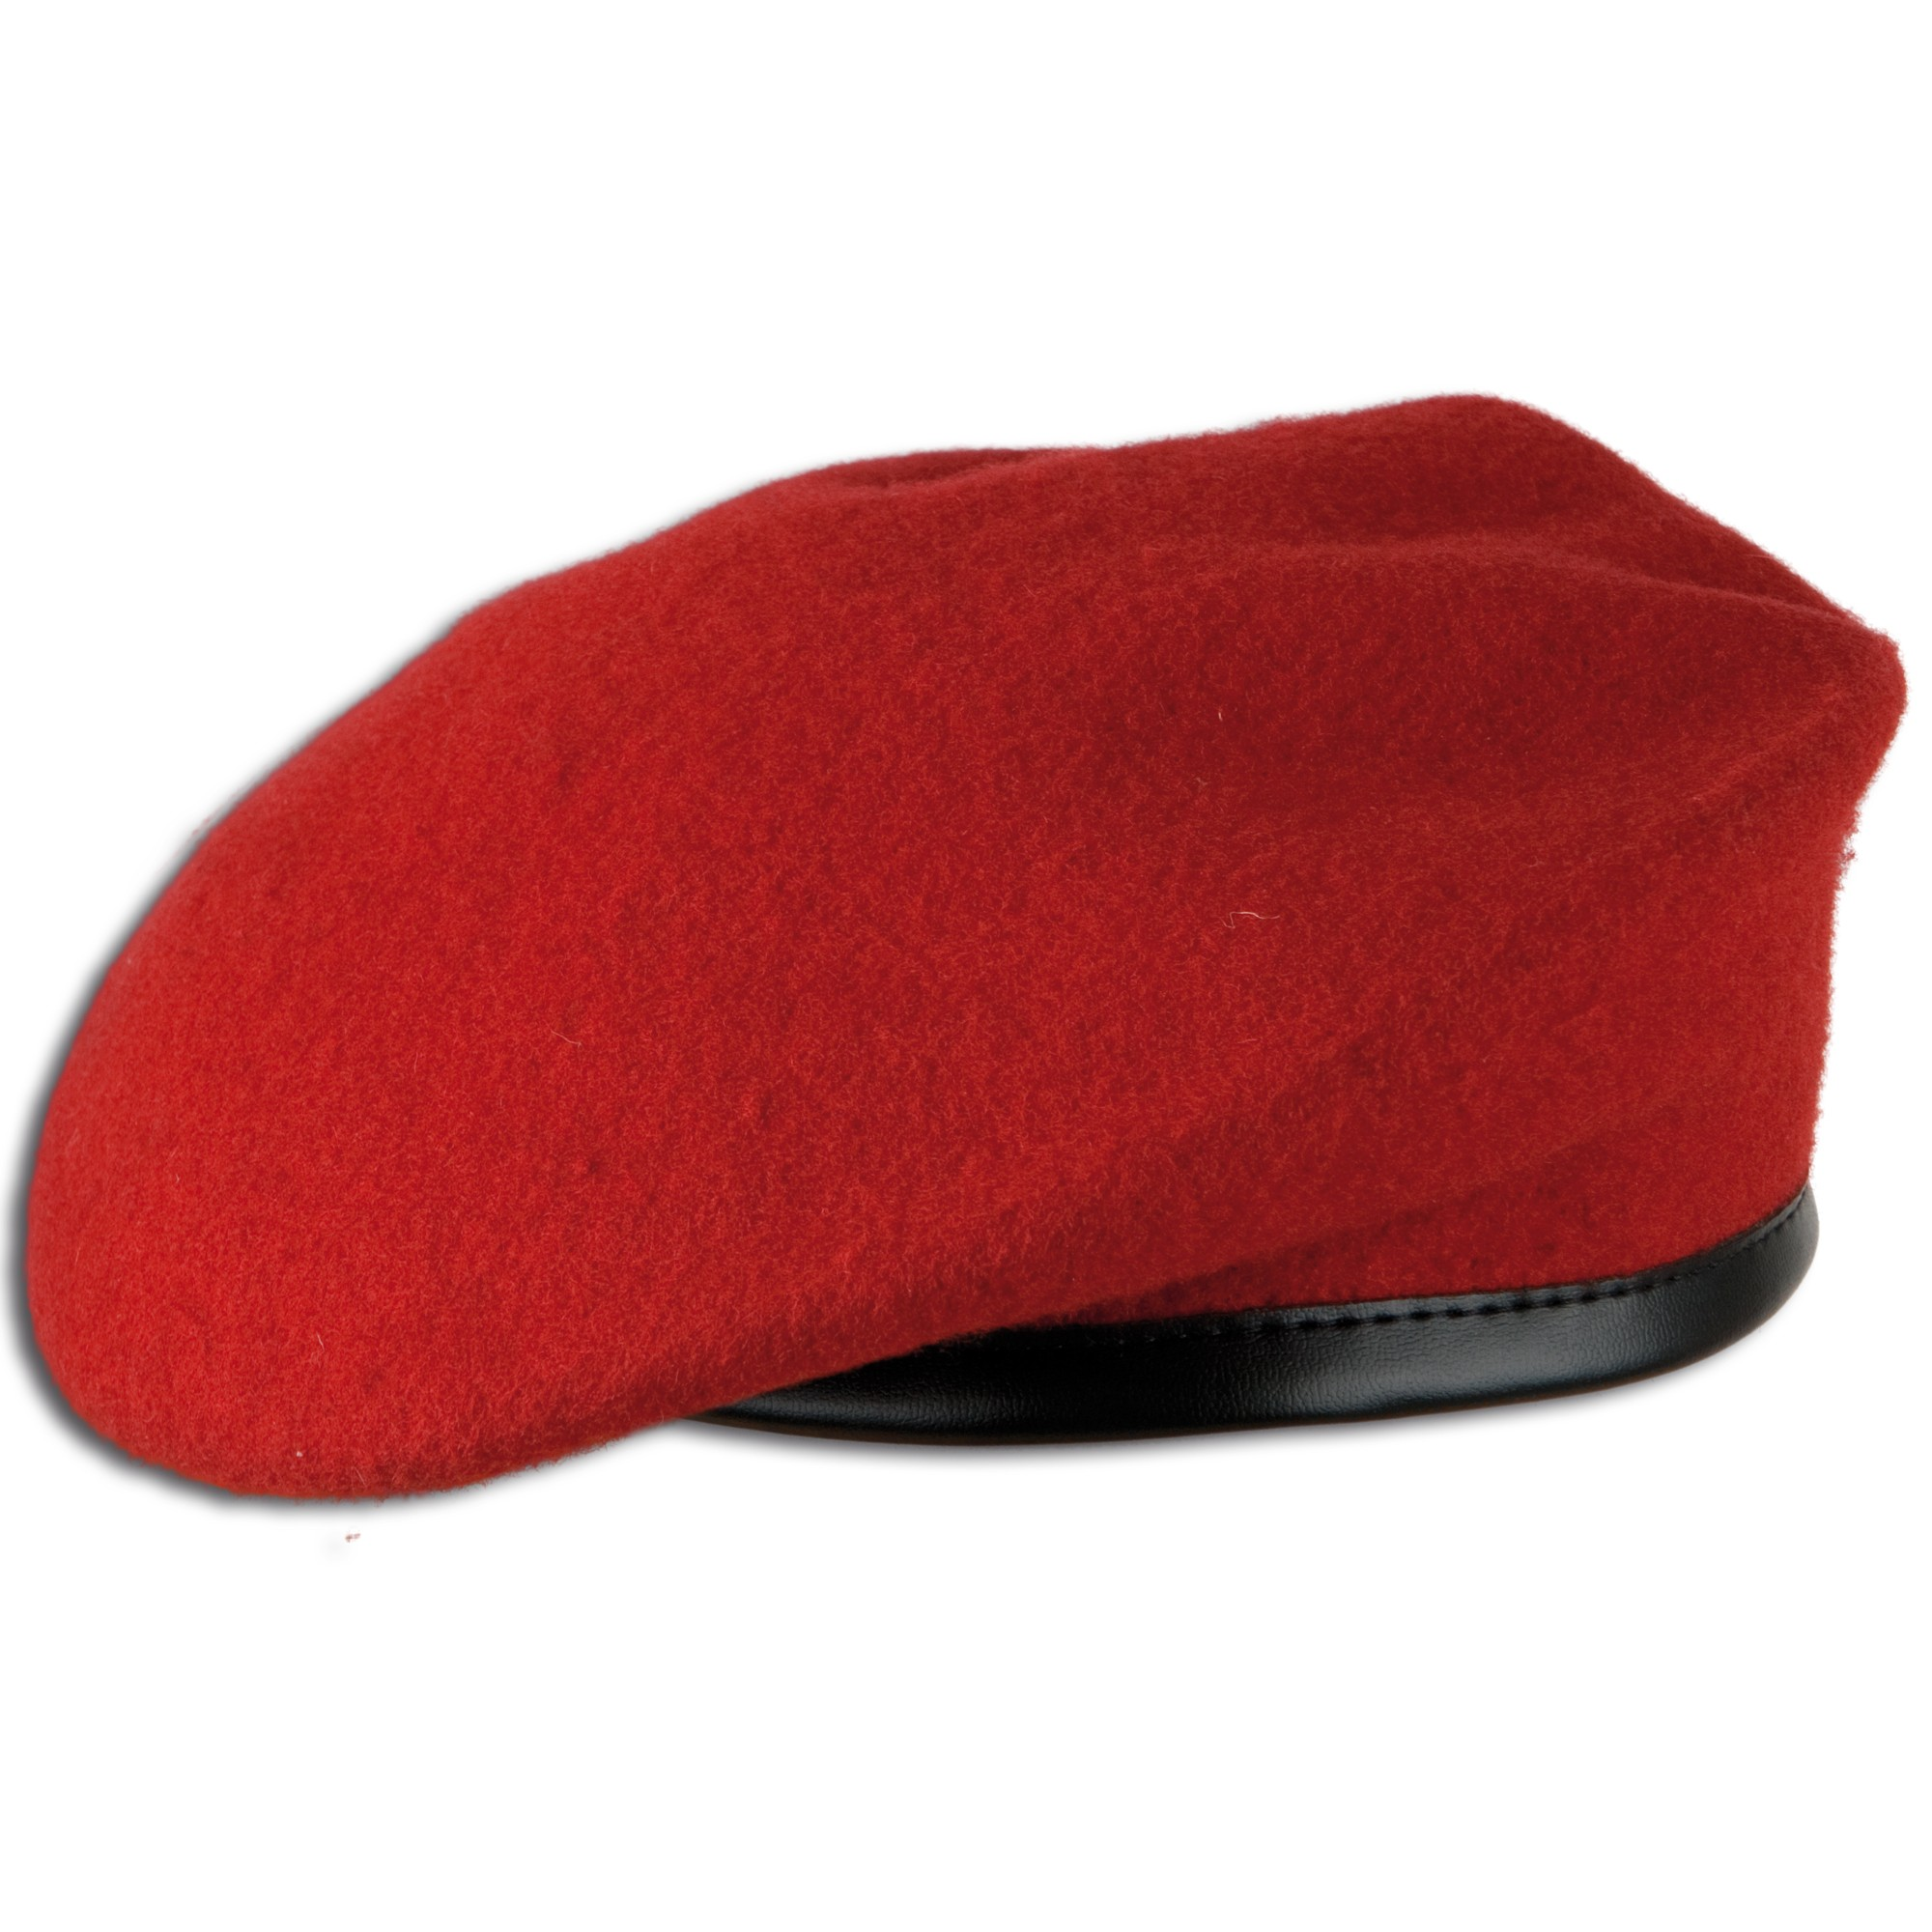 German Army Beret red